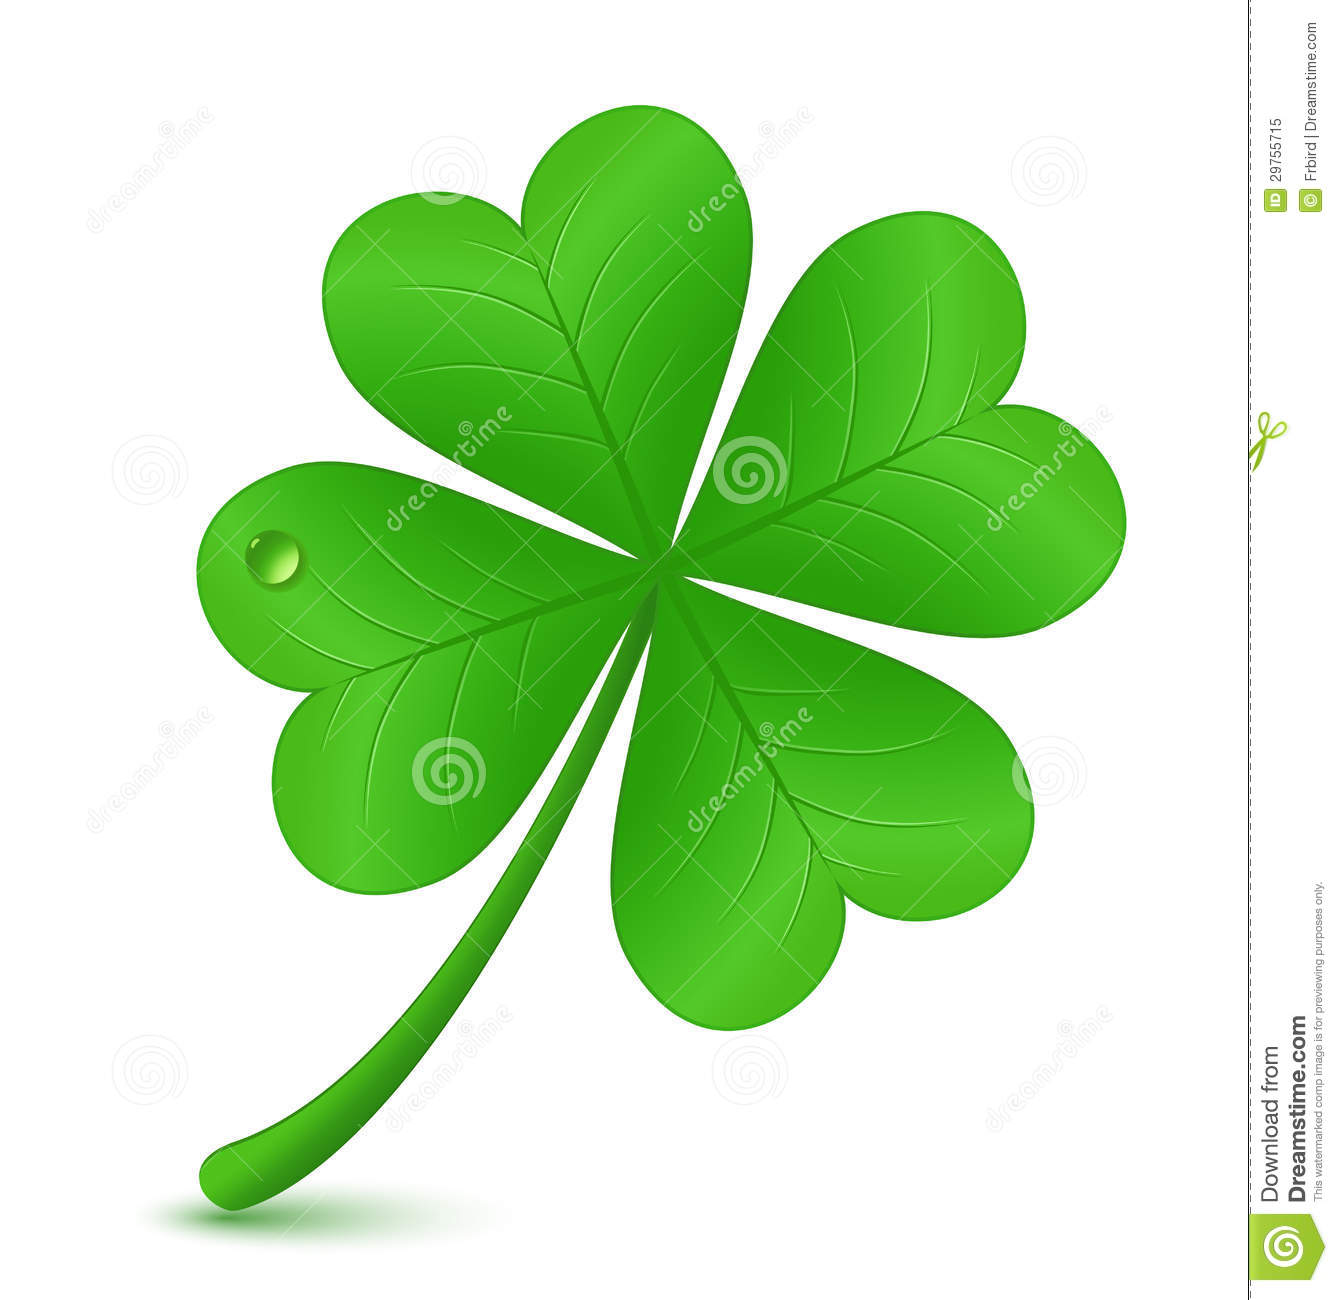 Four Leaf Clover. St. Patrick's Day Symbol Royalty Free Stock Photo ...